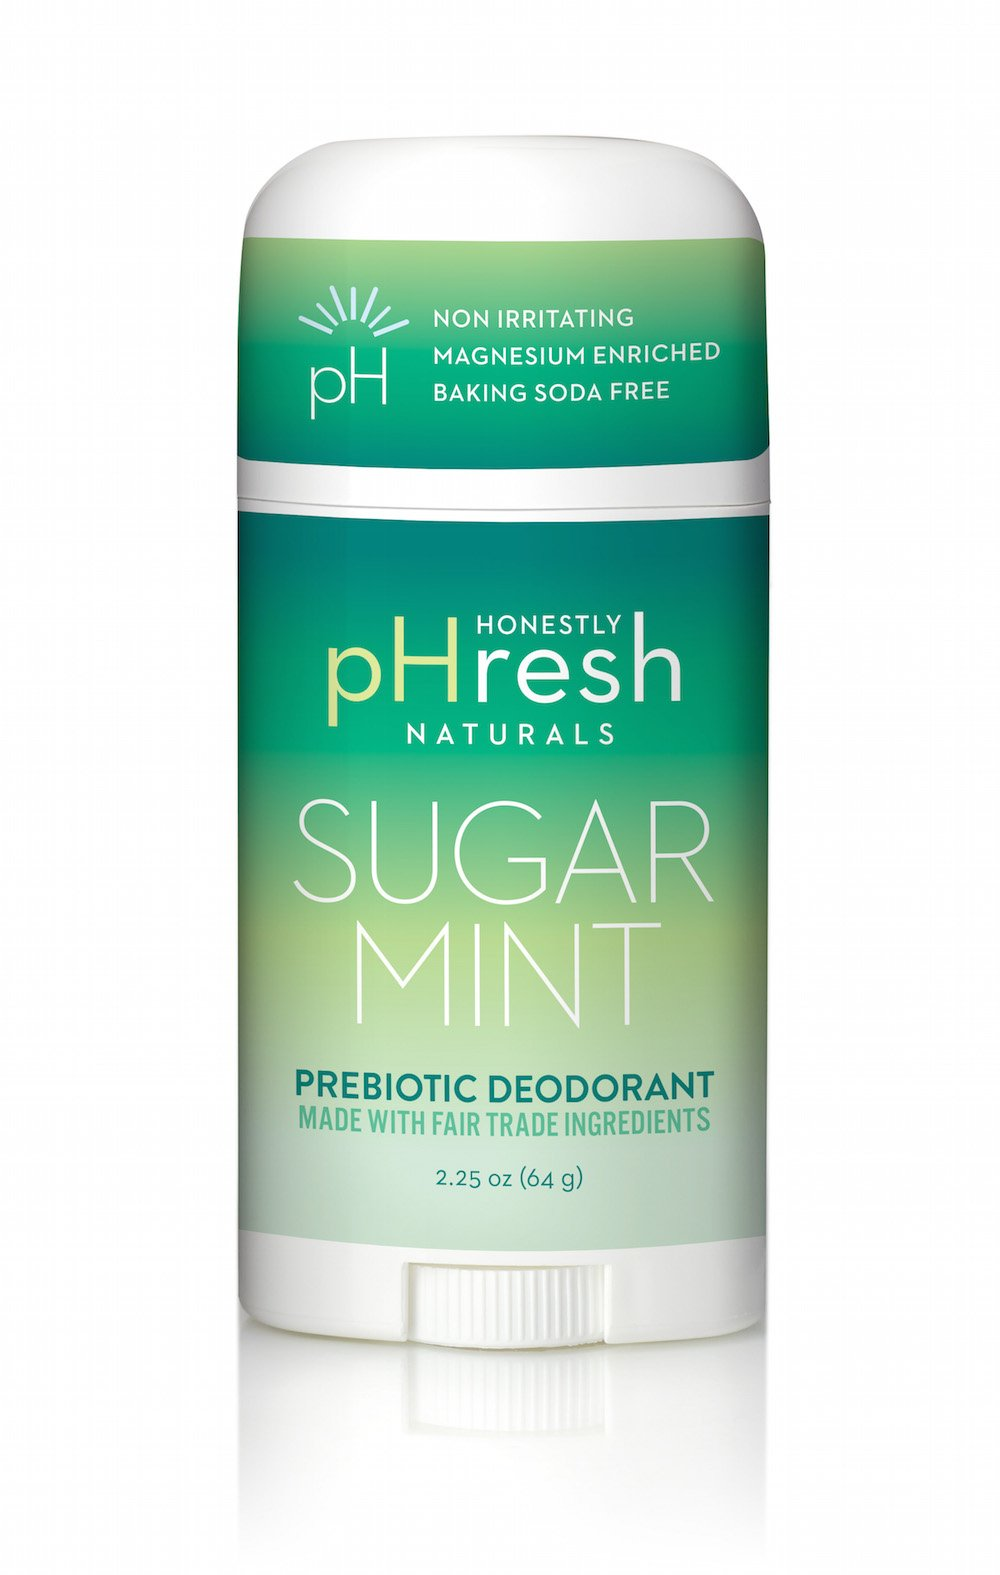 Honestly pHresh Sugar Mint Natural Deodorant Stick - 2.25 Ounce